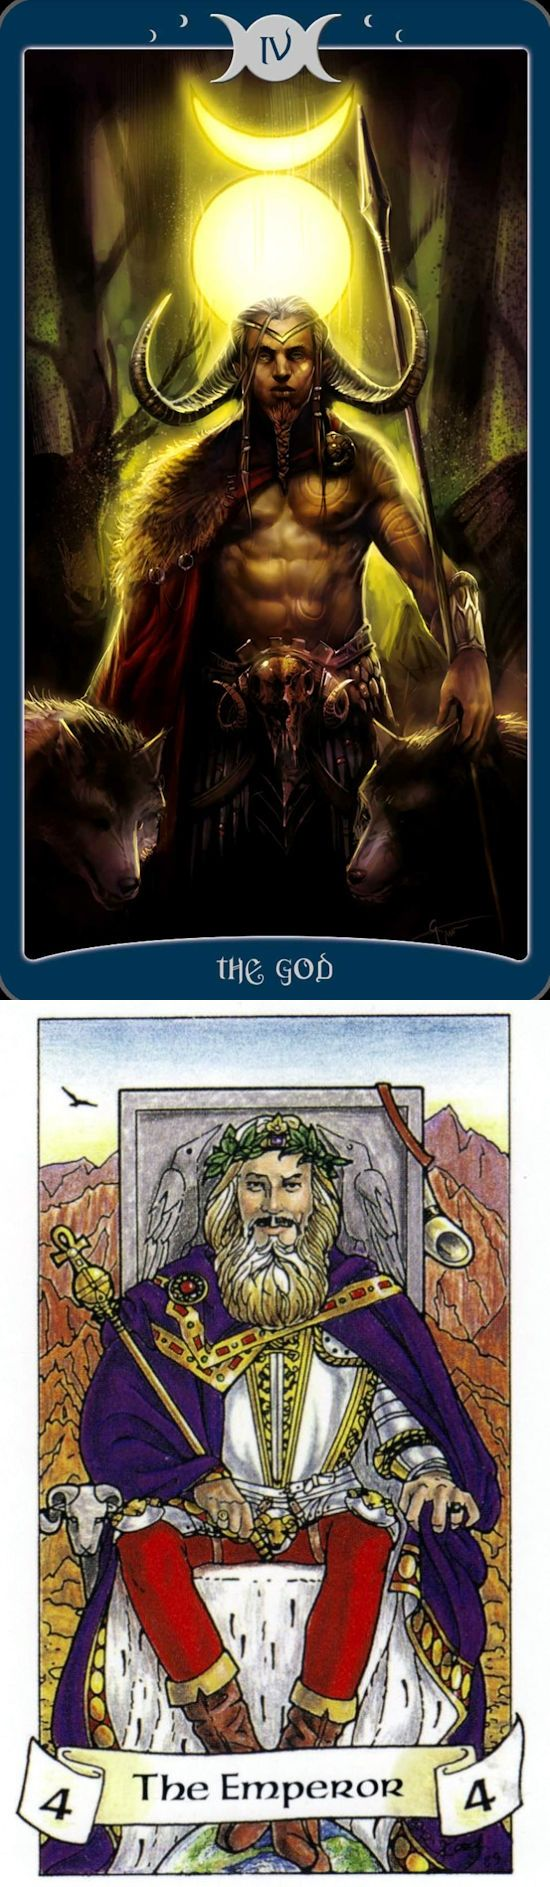 THE EMPEROR: father figure and too much control (reverse). Book Of Shadows Tarot deck and Robin Wood Tarot deck: free full tarot reading online, tarot today vs how to do a tarot card reading. New tarot art nouveau and wiccan spells. #pentacle #ritual # #halloween #altar #tarotspreads